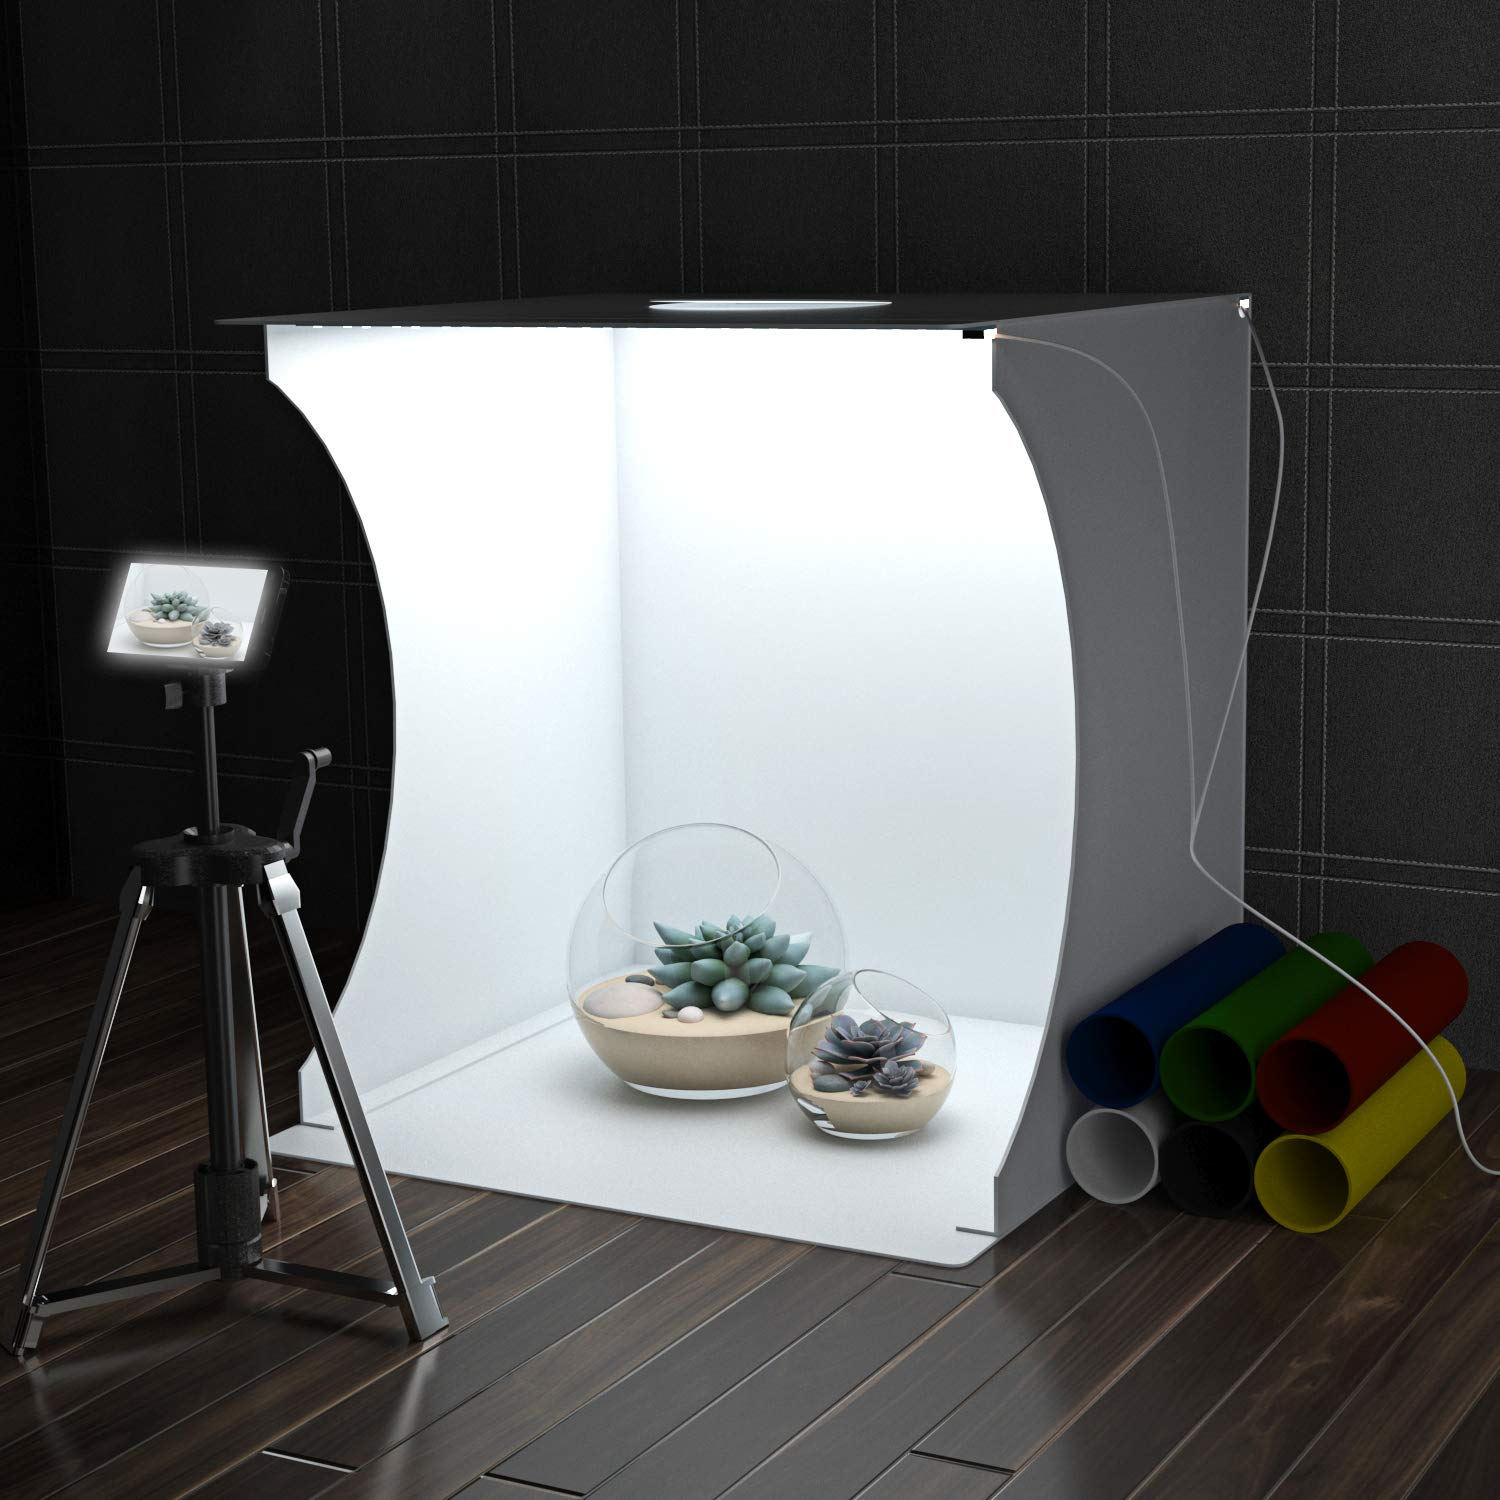 Qulable Photo Studio Box, Mini Photo Shooting Tent Kit, Foldable Photography Lighting Softbox with 6 Colors Photography Backdrops Waterproof Background Screen for Advertising Photography Lighting Tool